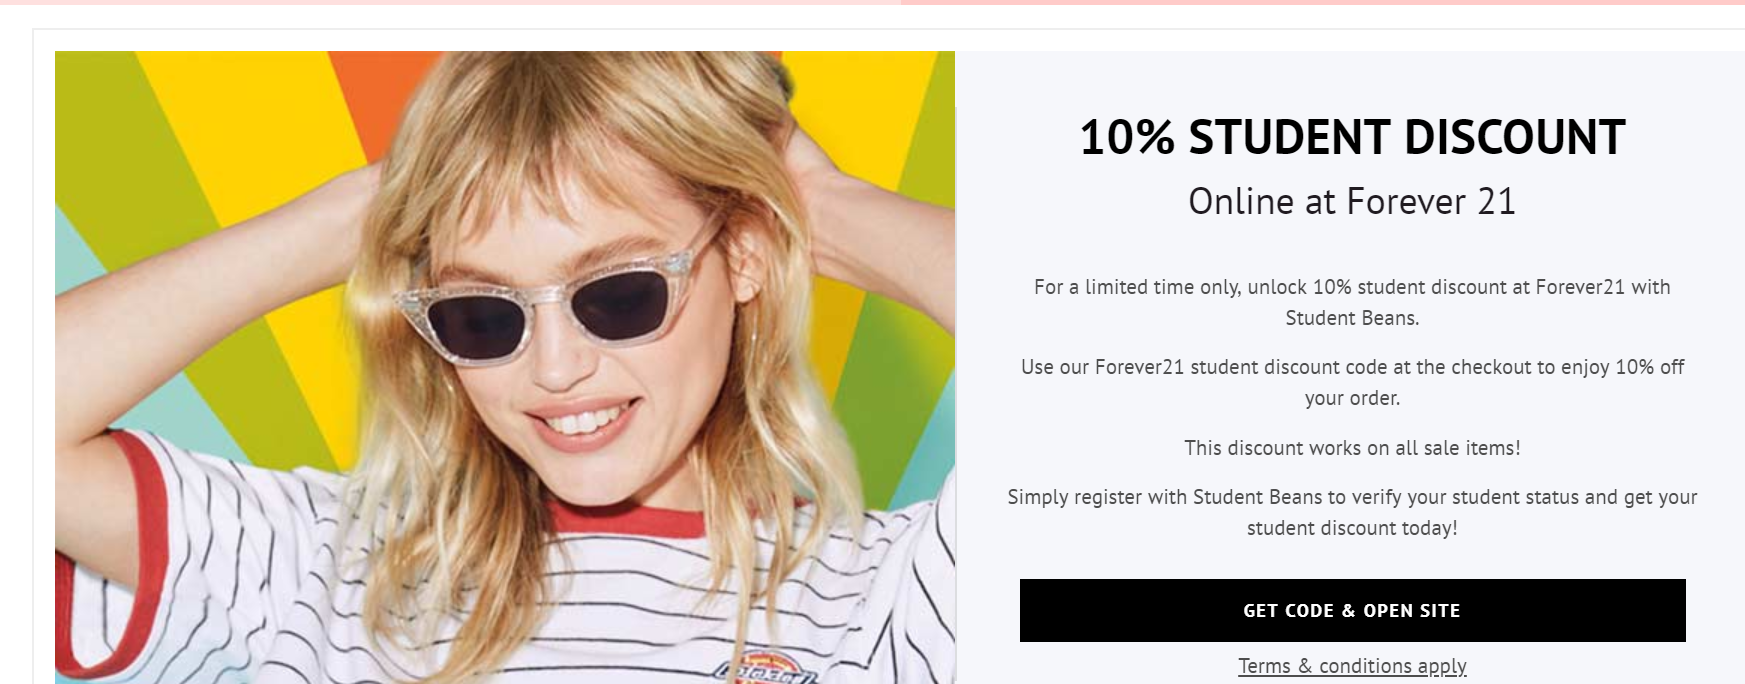 Photo: Screenshot from Forever21 website